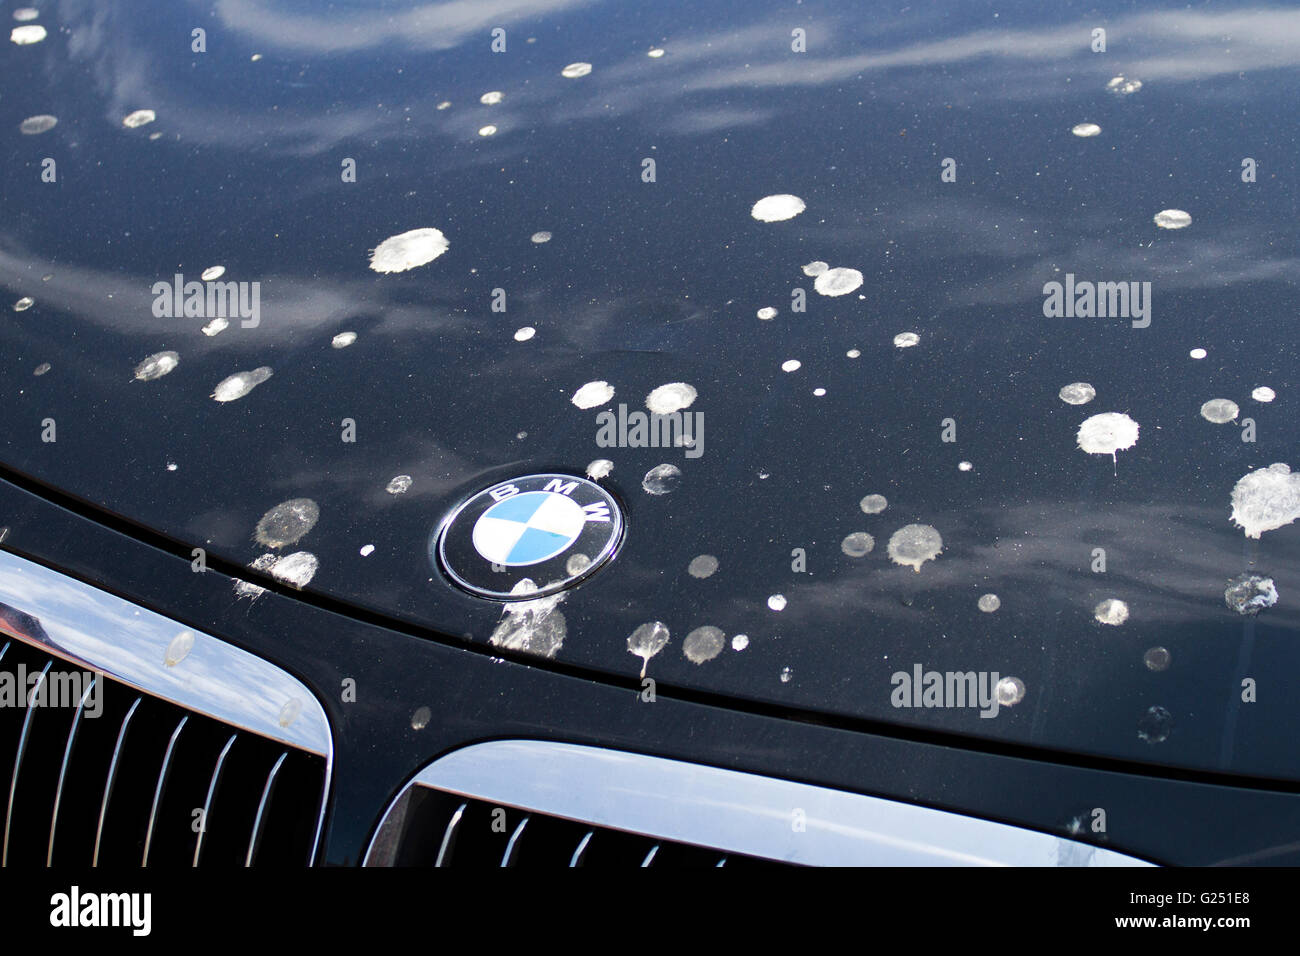 BMW at risk of damage from bird droppings in Fleetwood, Thorton-Cleveleys, Flyde Coast, Lancashire, UK - Stock Image